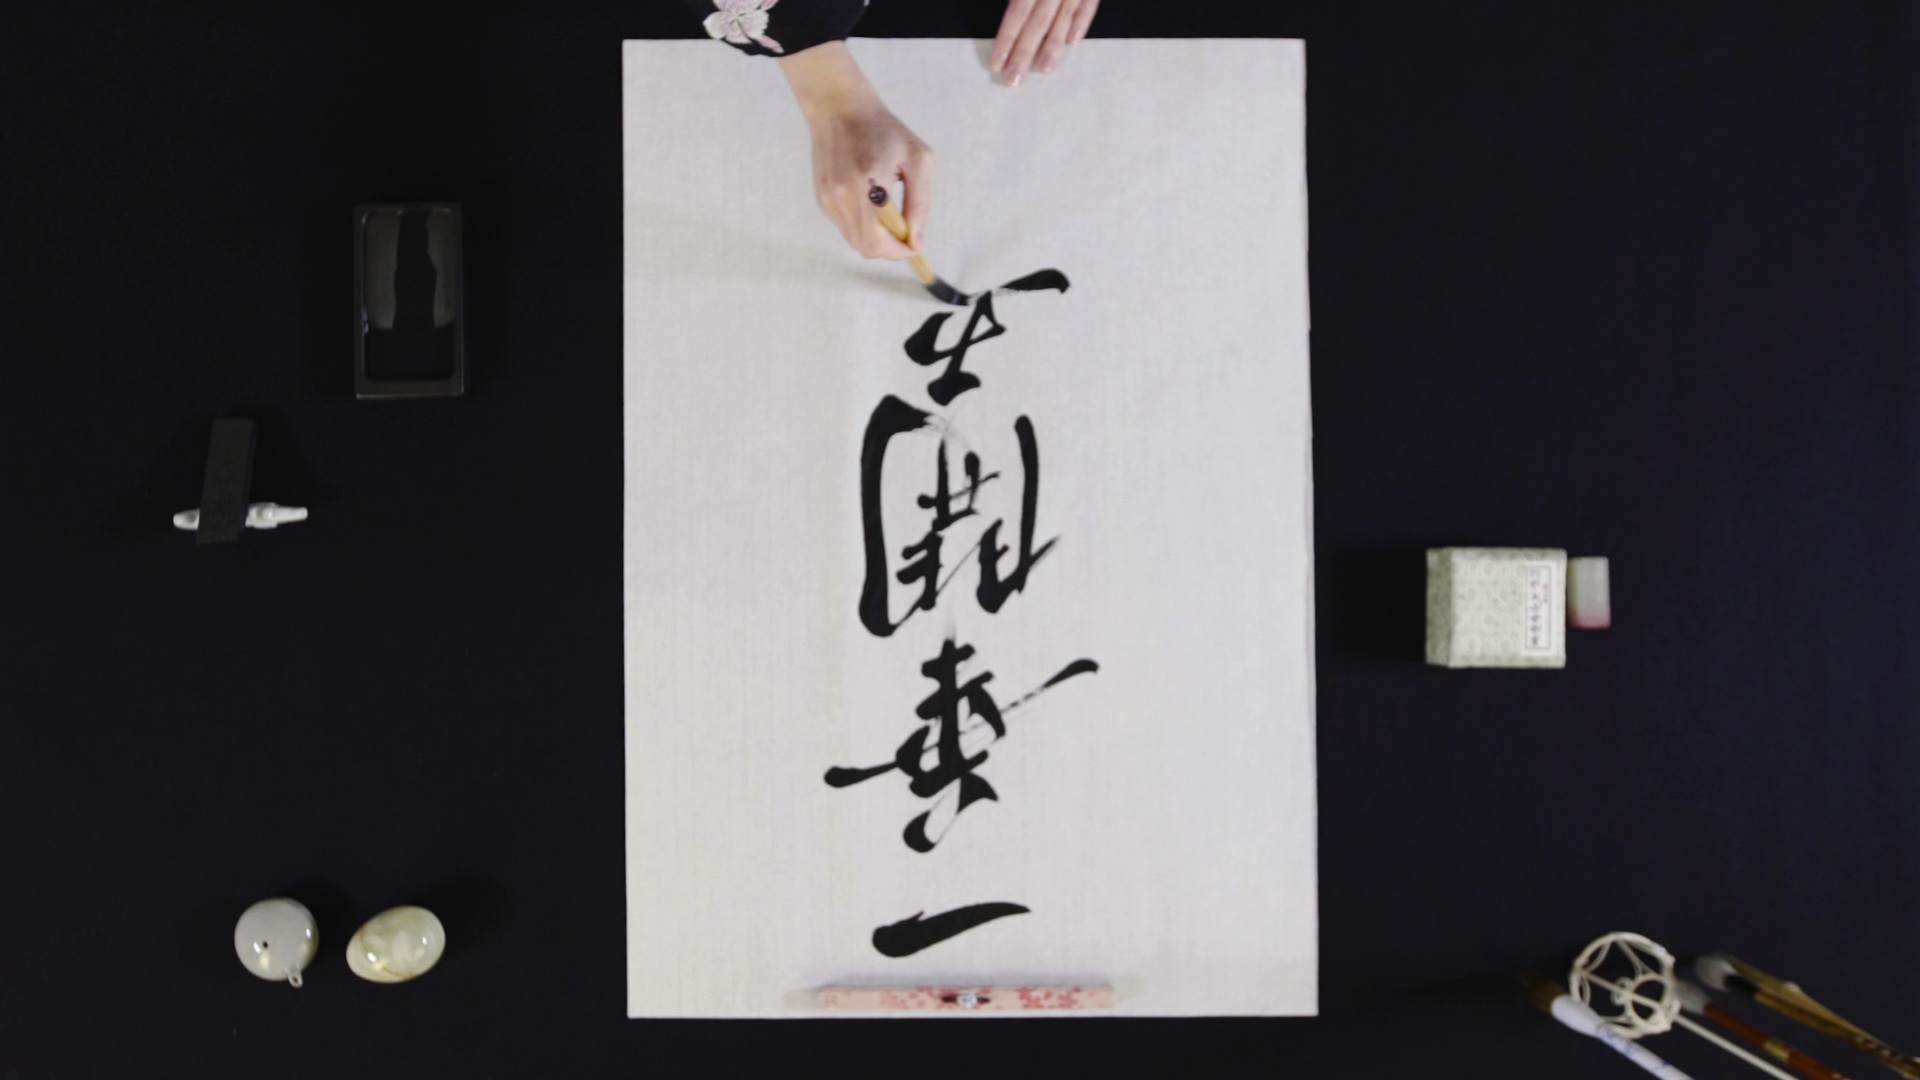 Japanese Calligraphy for Chado Ceremony